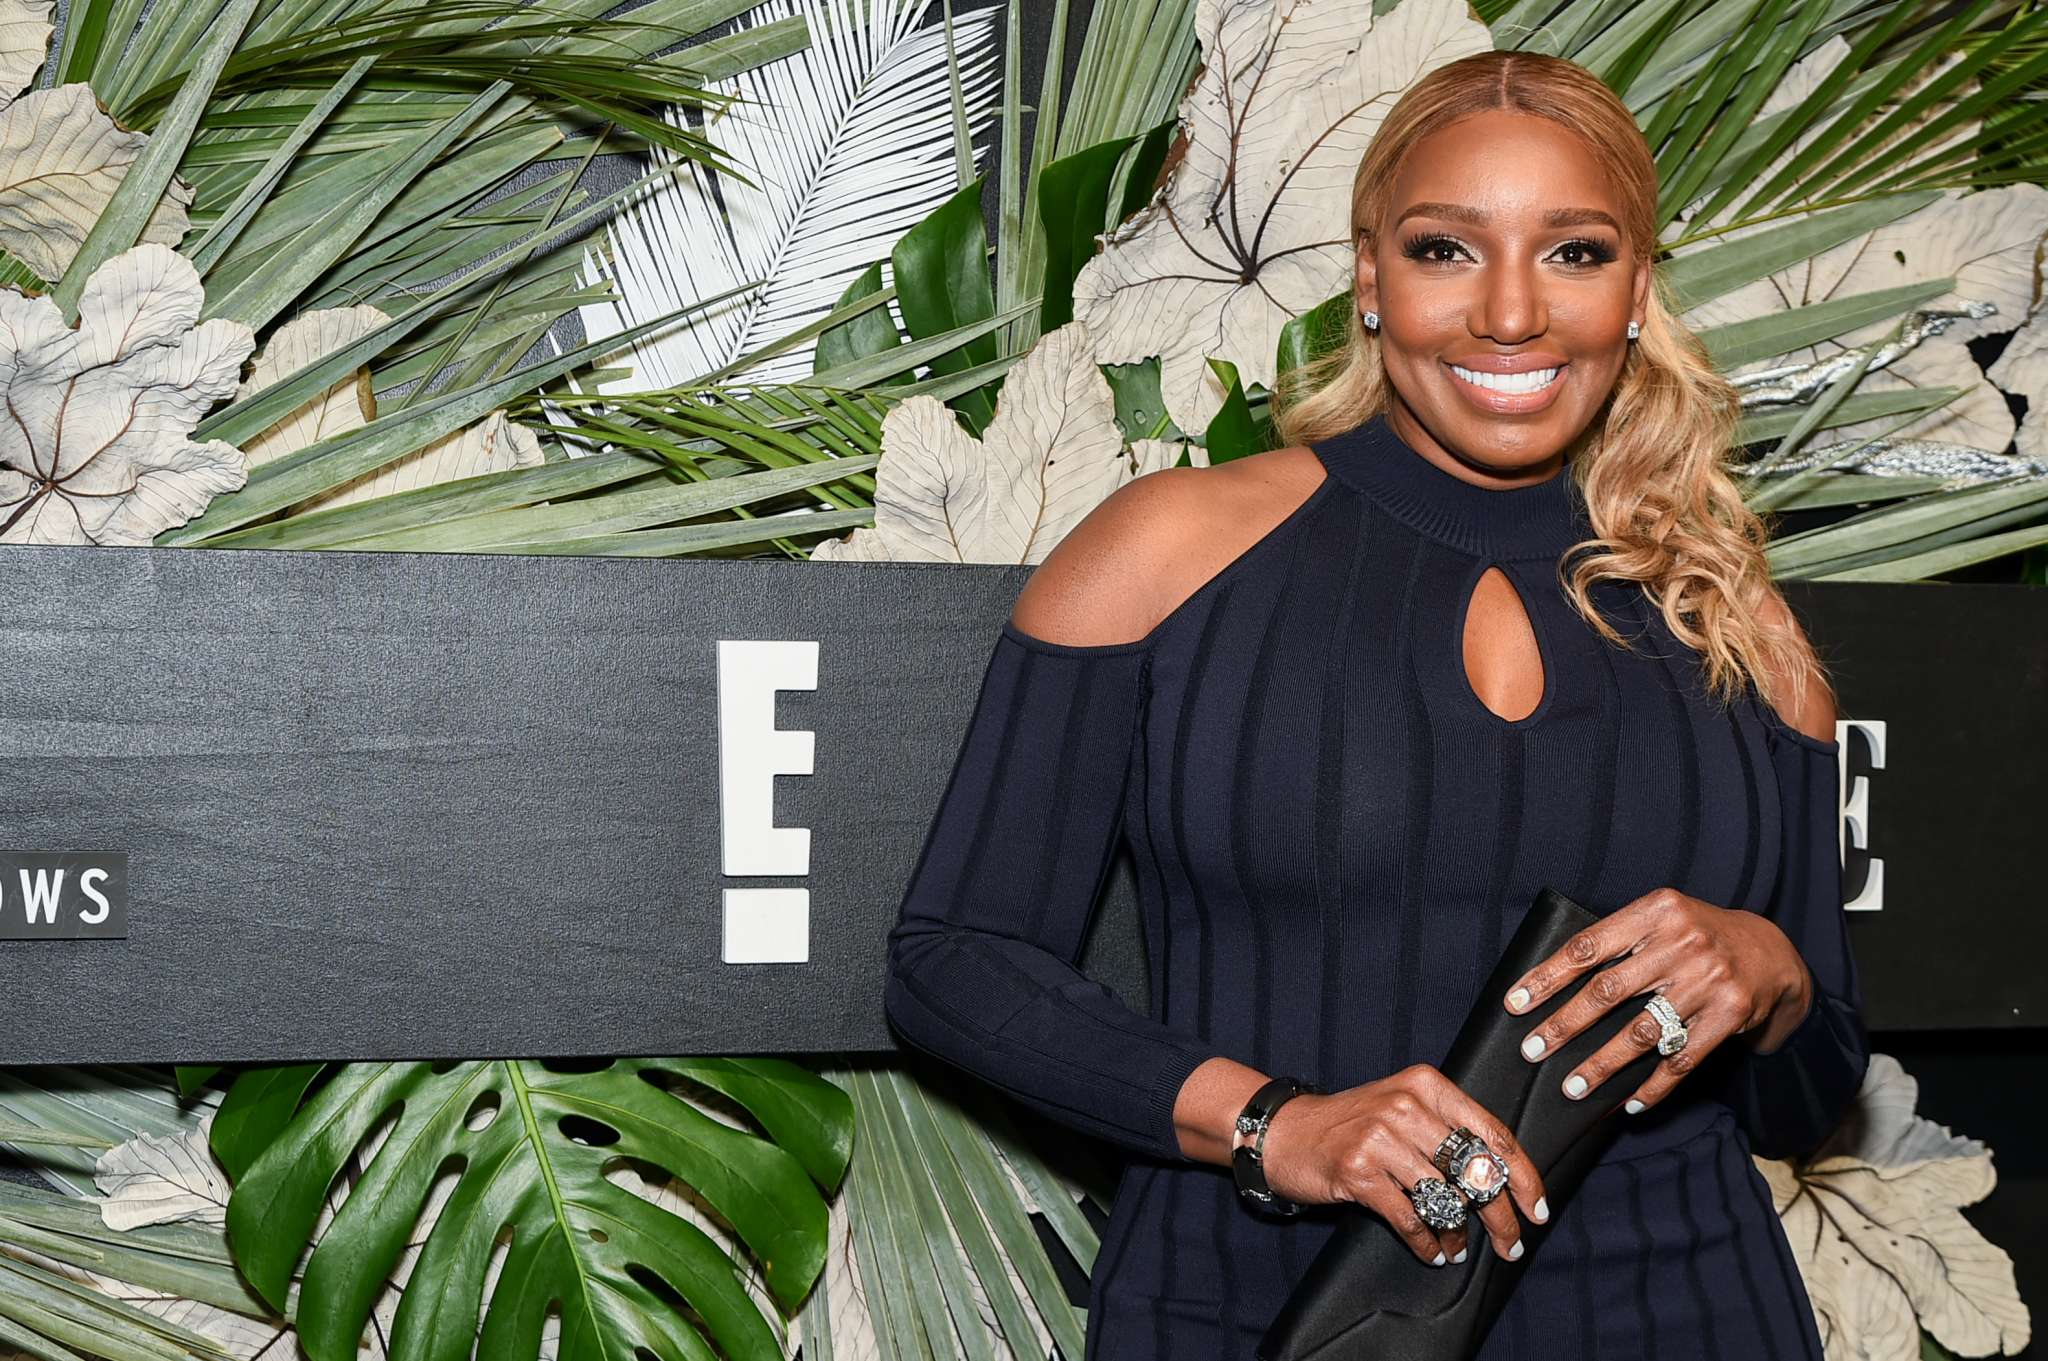 NeNe Leakes' Fans Debate Whether She Should Leave RHOA Or Not